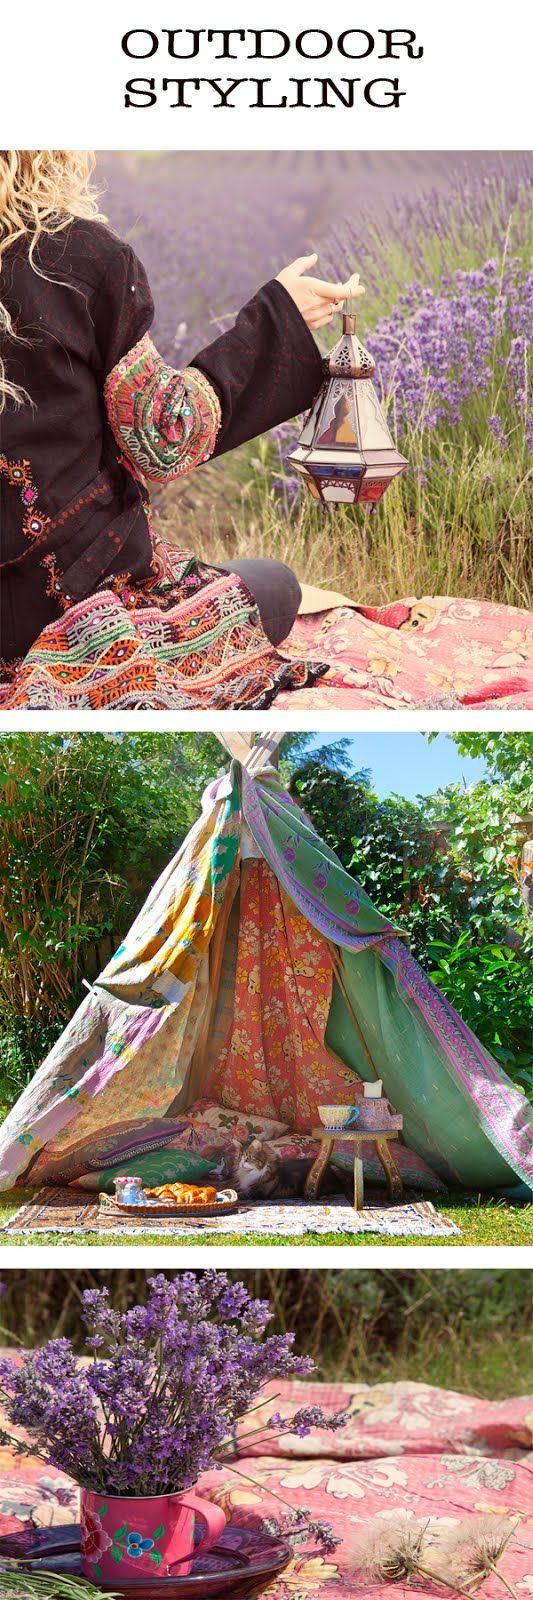 outdoor, picnic, style with kantha quilts, bohemian, boho, eclectic, hippy, indian, colour, textiles, be home free style